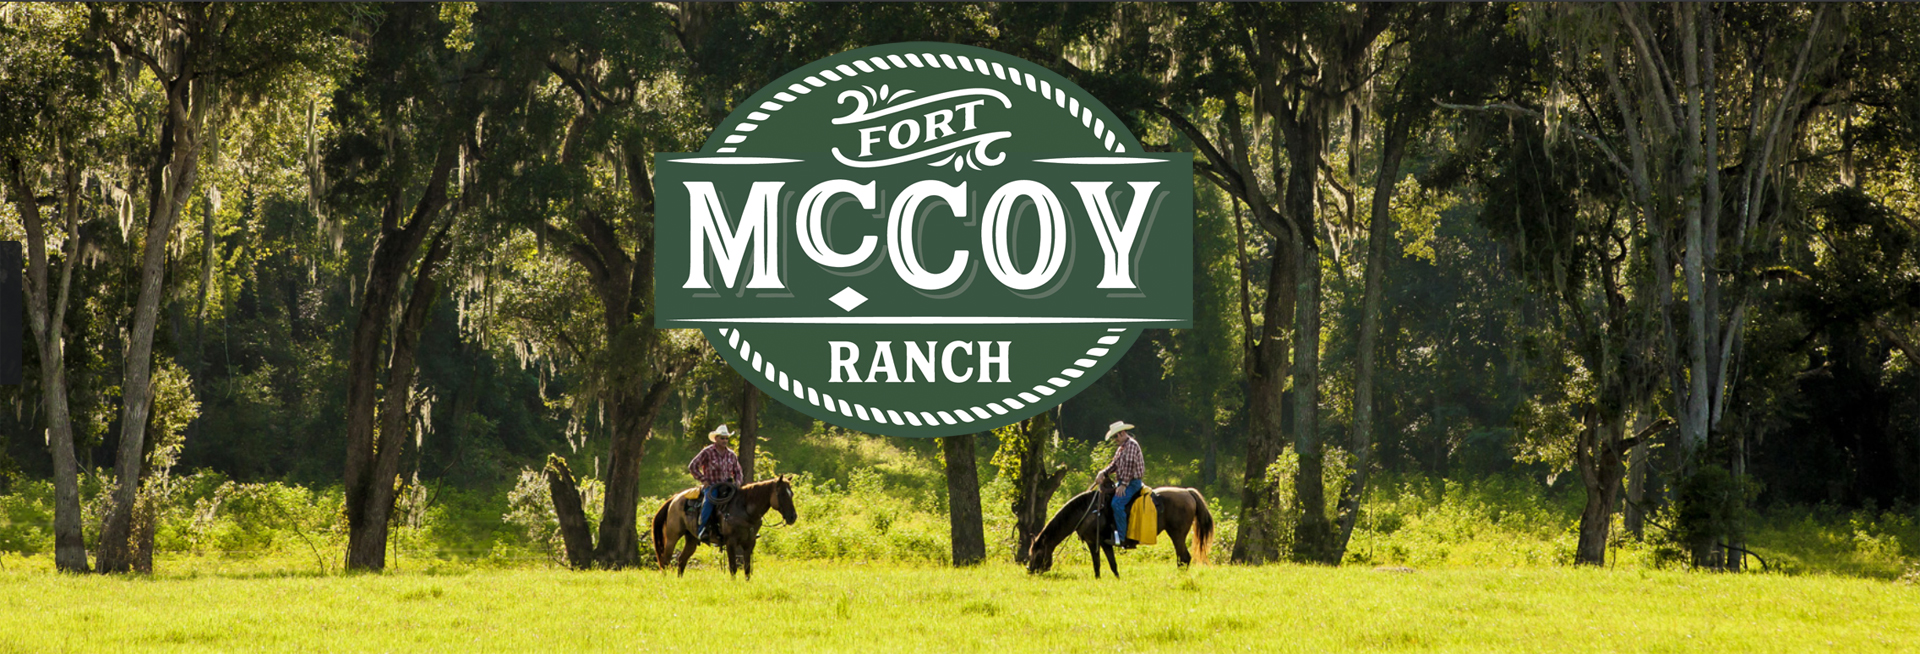 Fort McCoy Ranch Logo